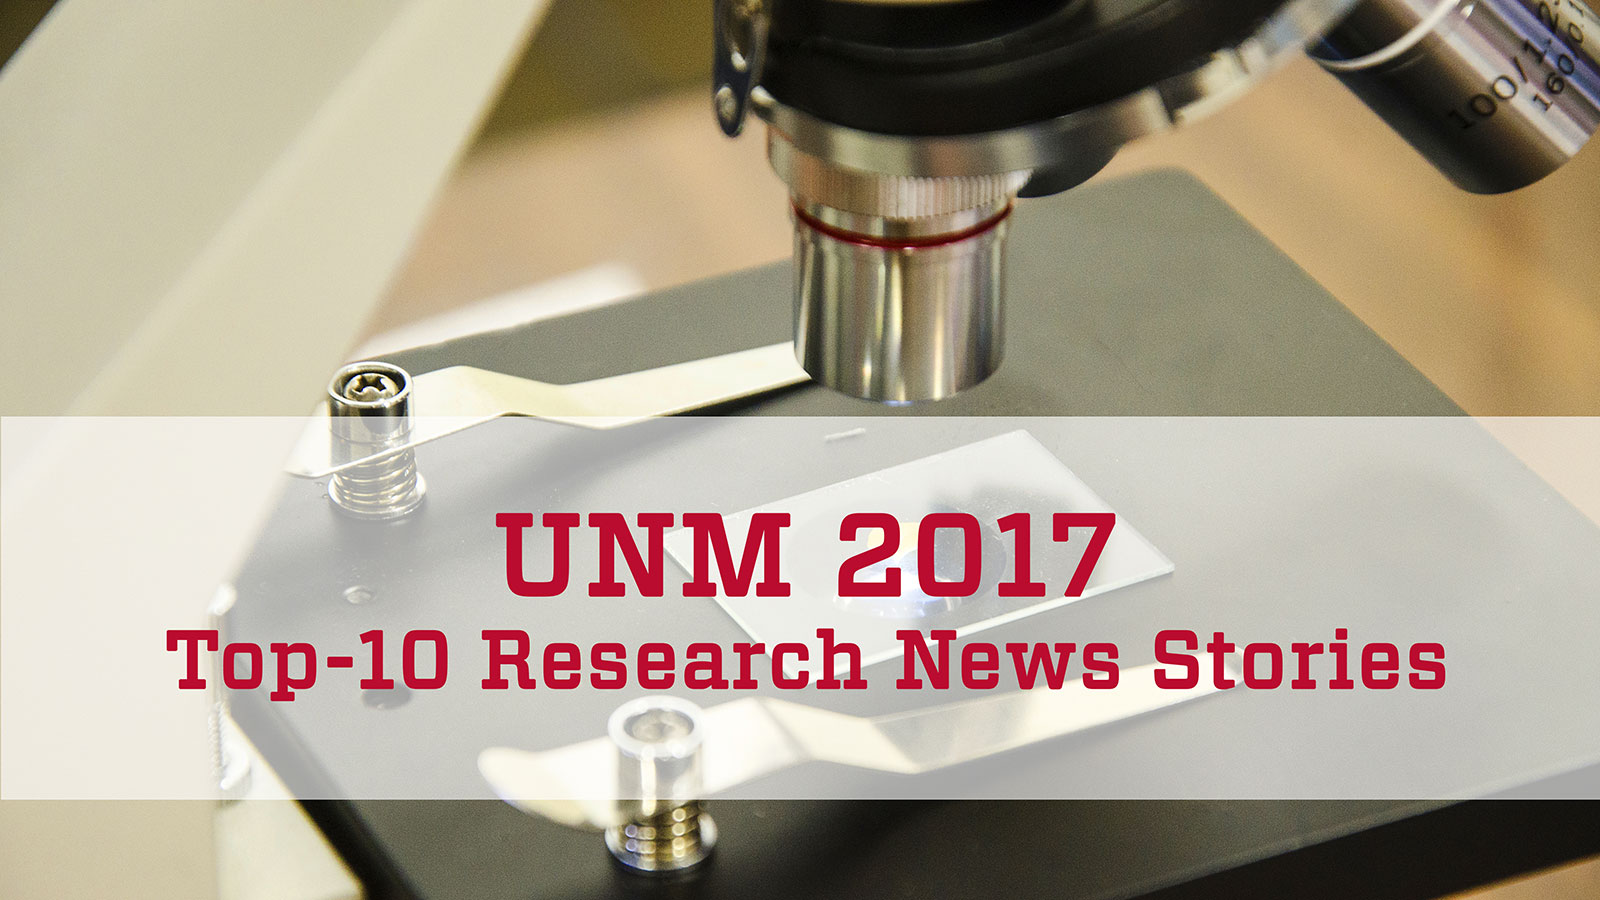 UNM's 2017 top-10 research news stories